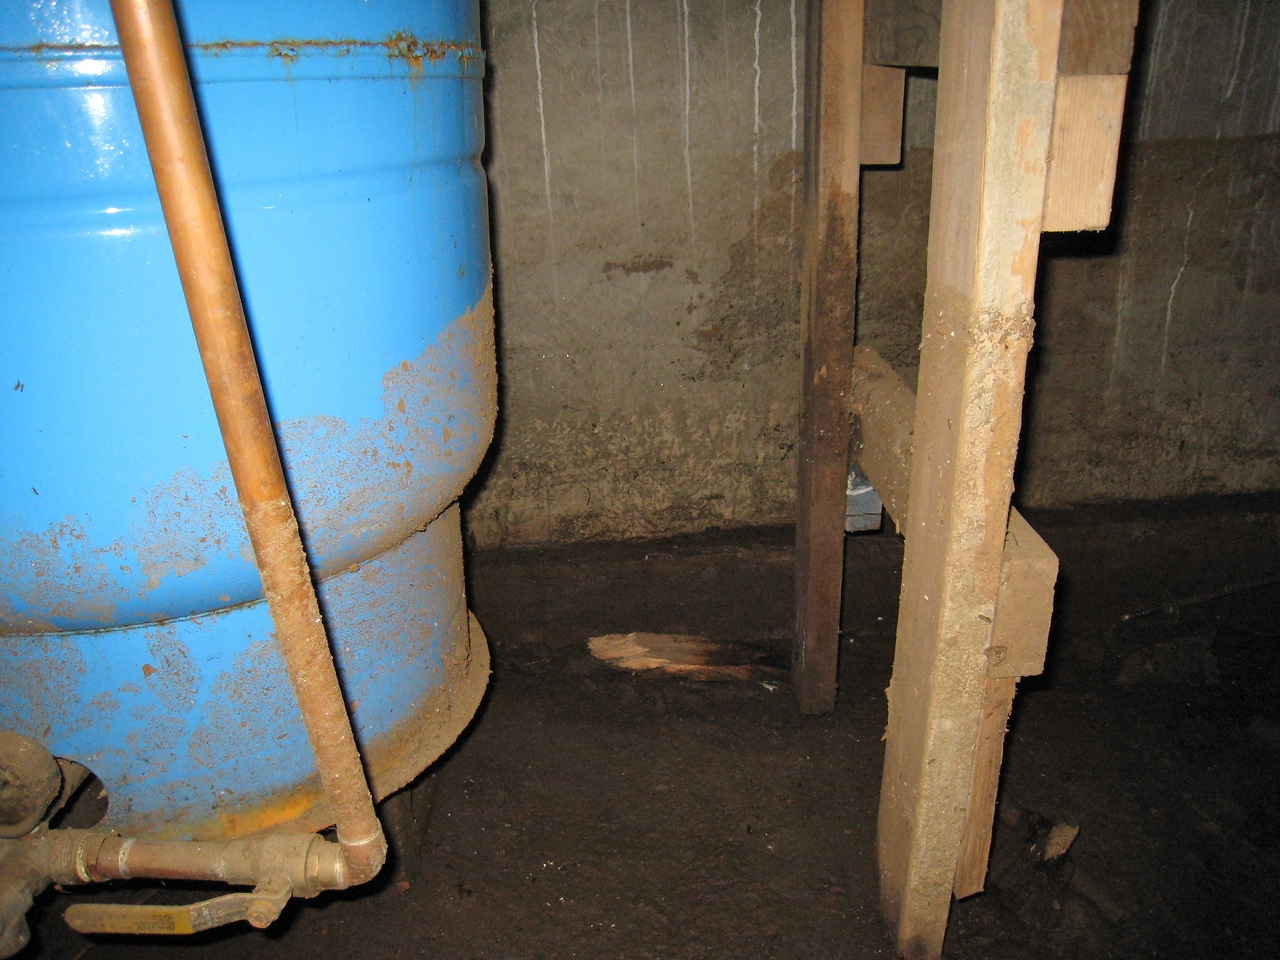 Flood Evidence, Water Tank and Ladder